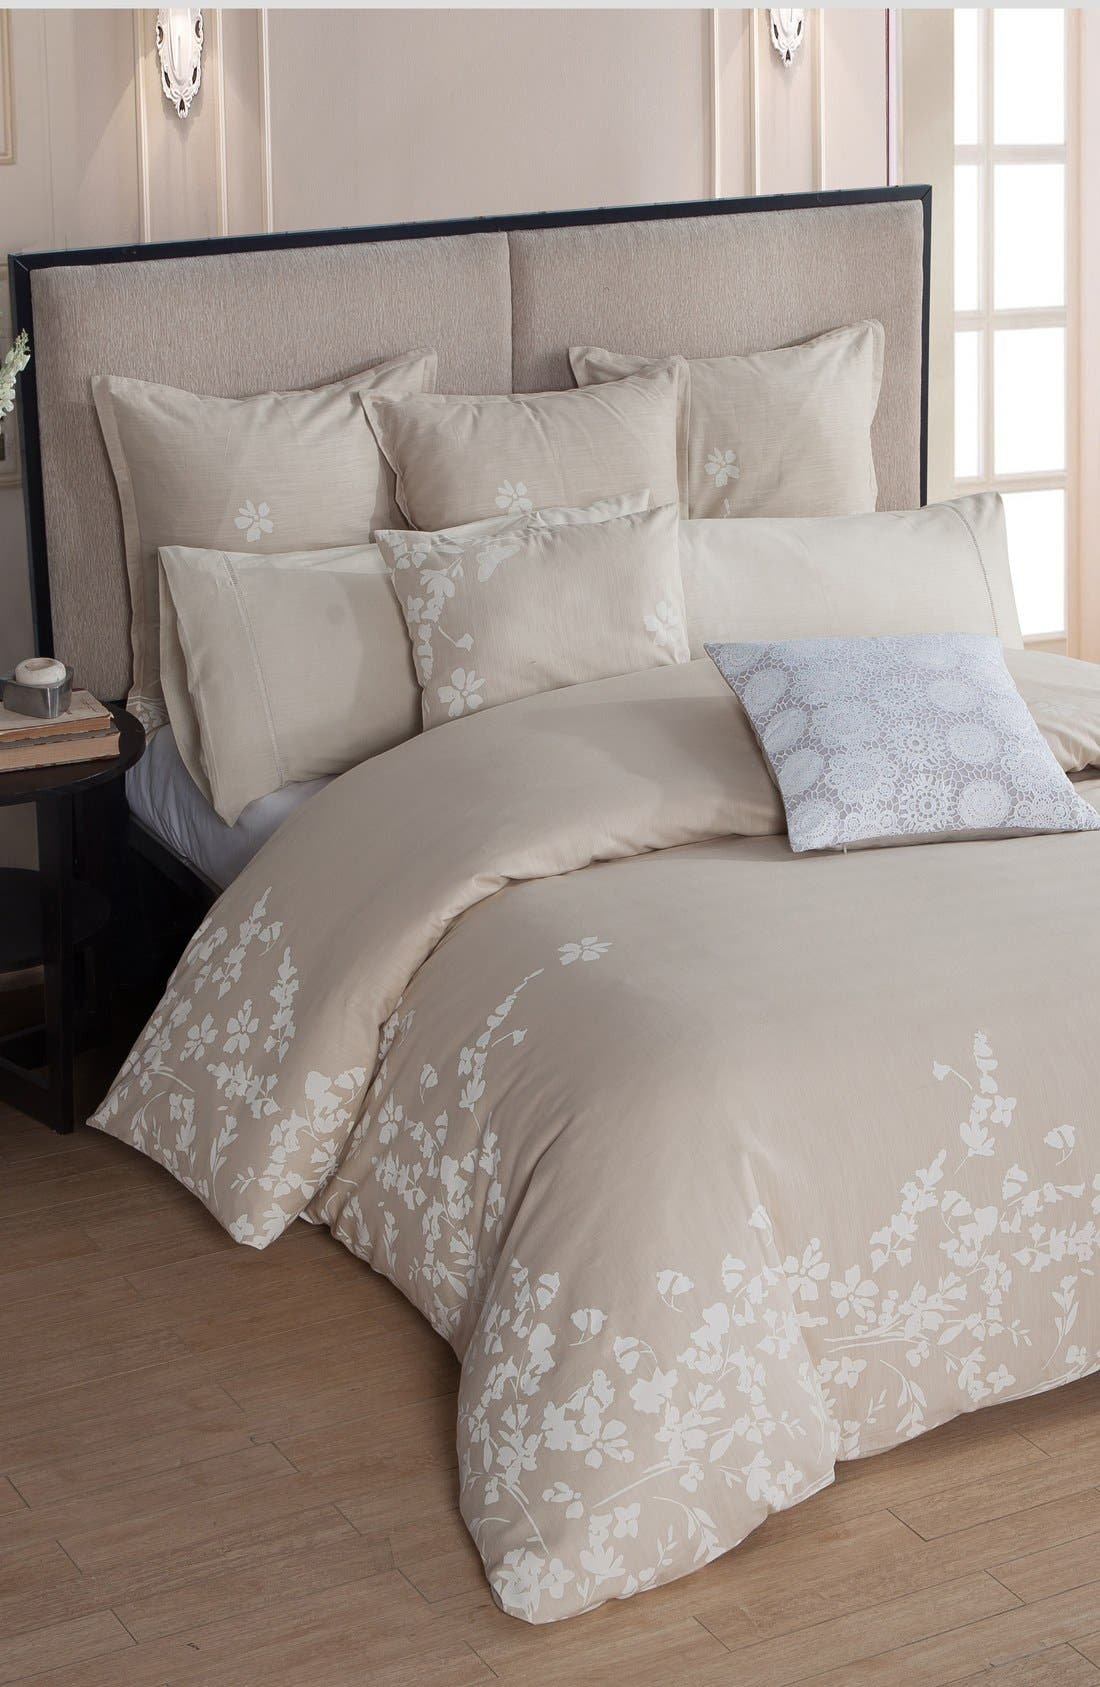 Laramie Duvet Cover & Sham Set,                         Main,                         color, BEIGE